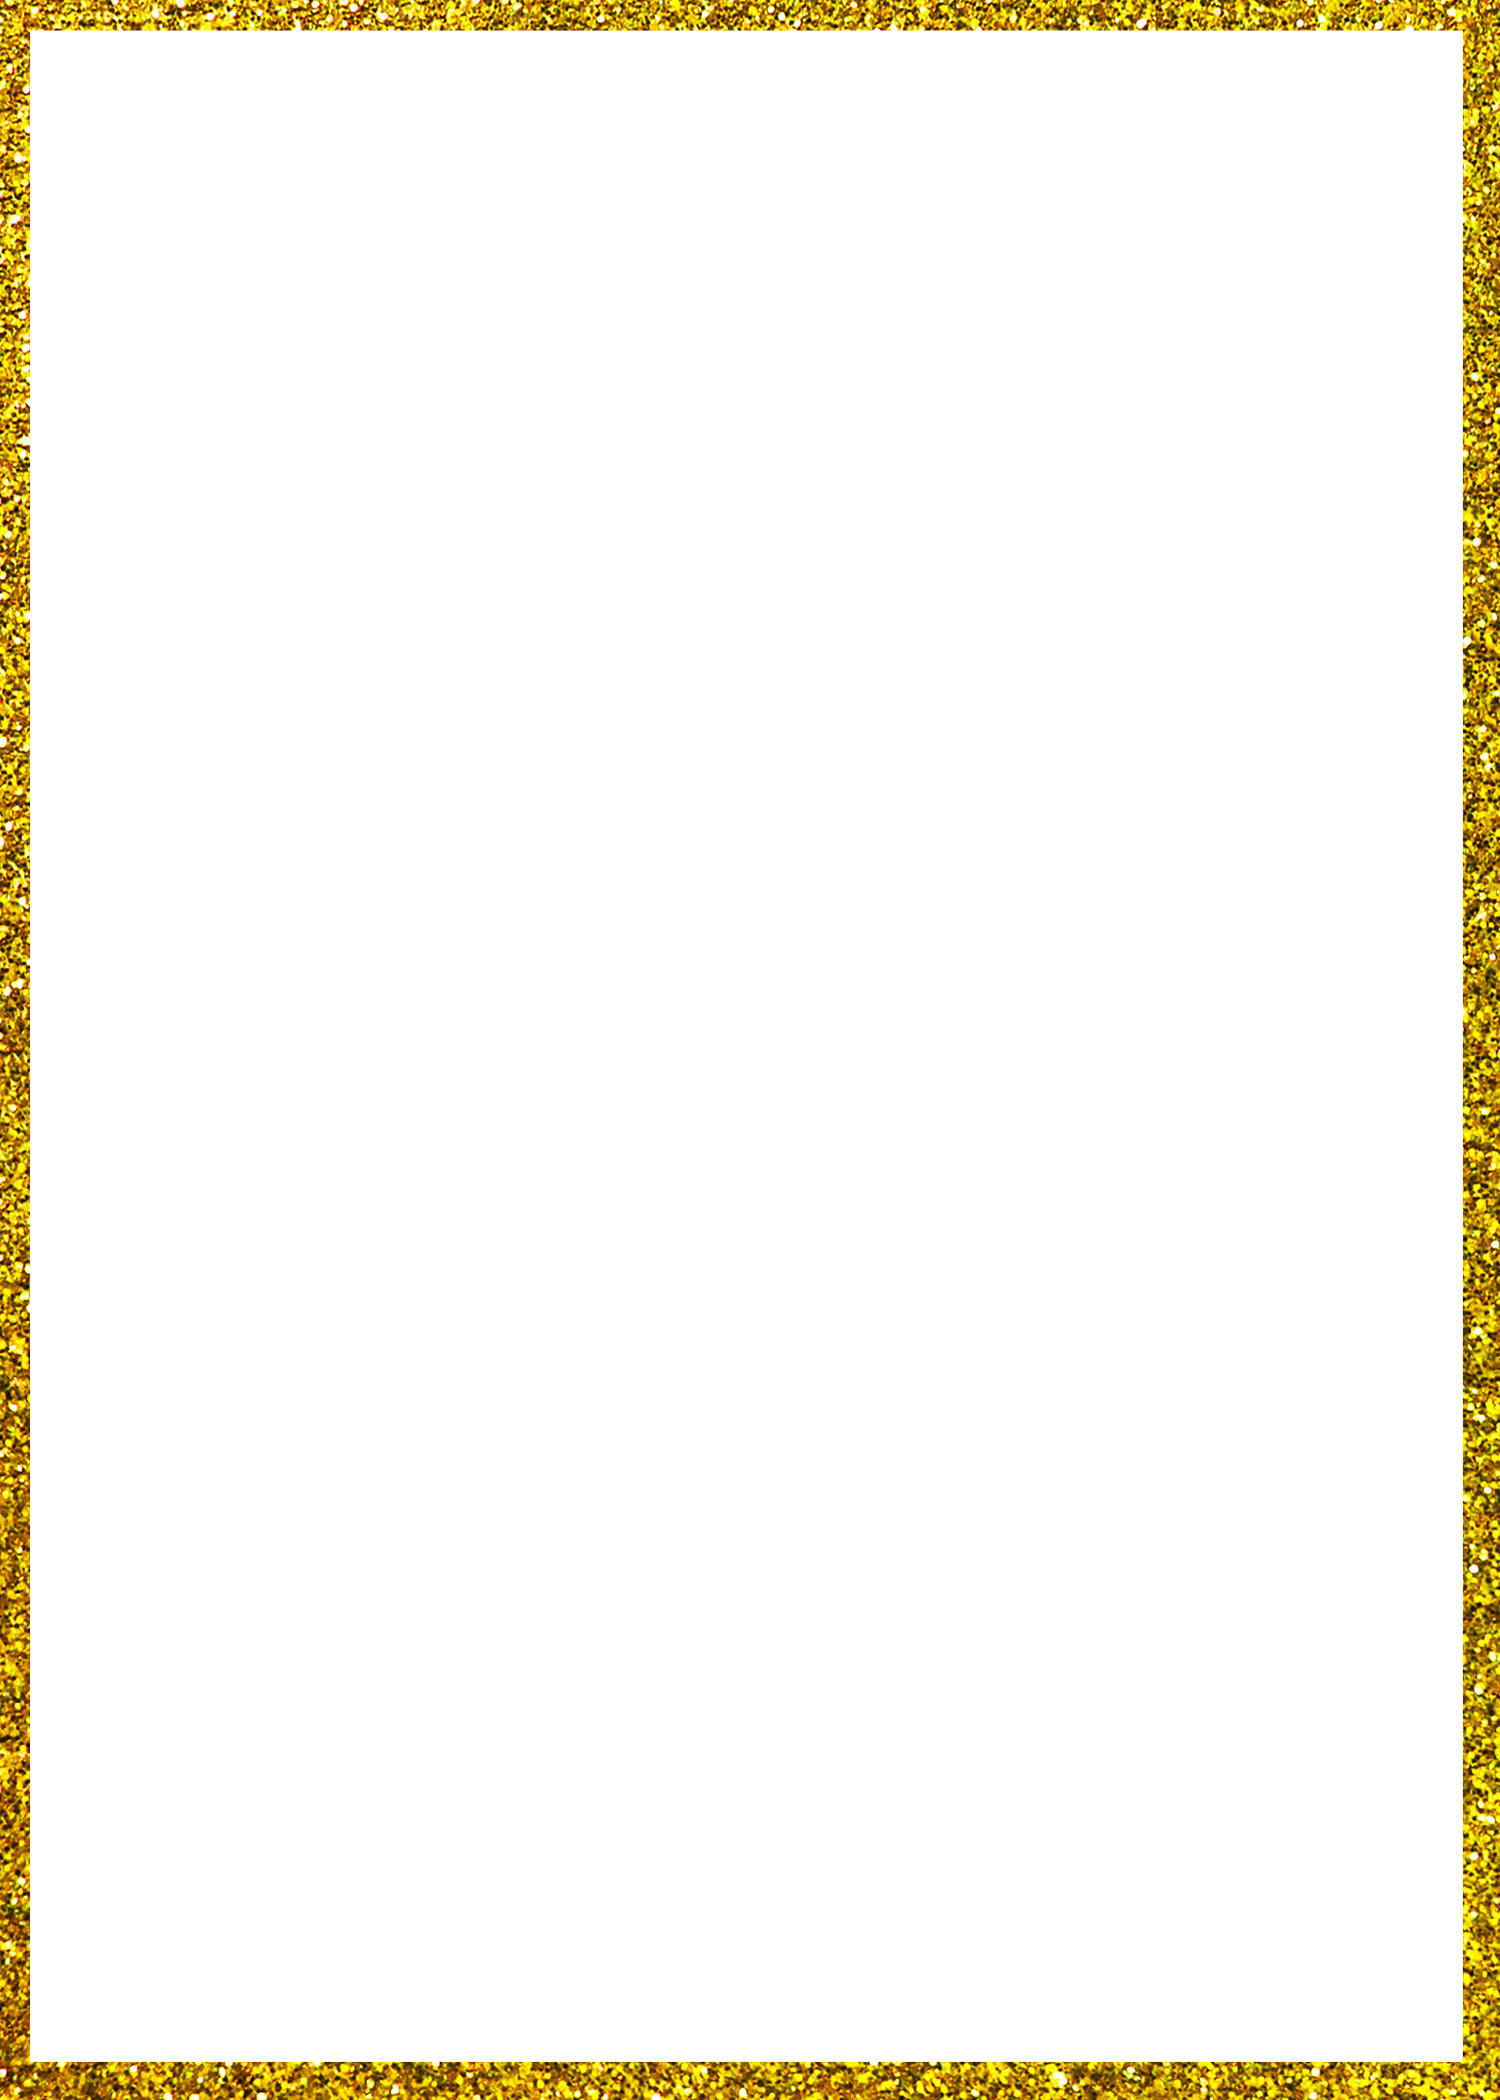 Golden border png. Gold frame simple square